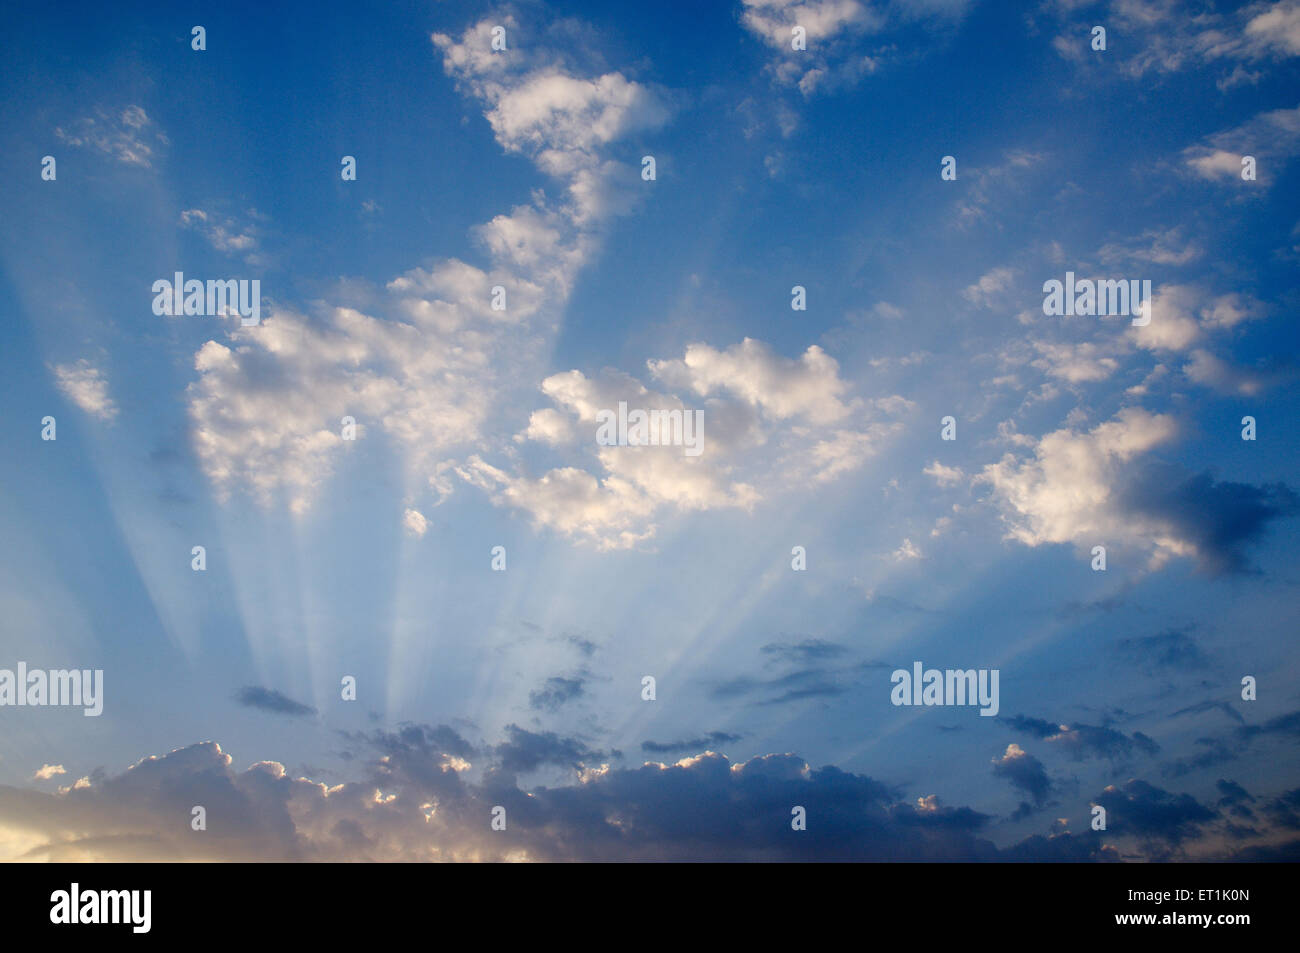 White cloud formation against blue skies ; 20 October 2009 - Stock Image